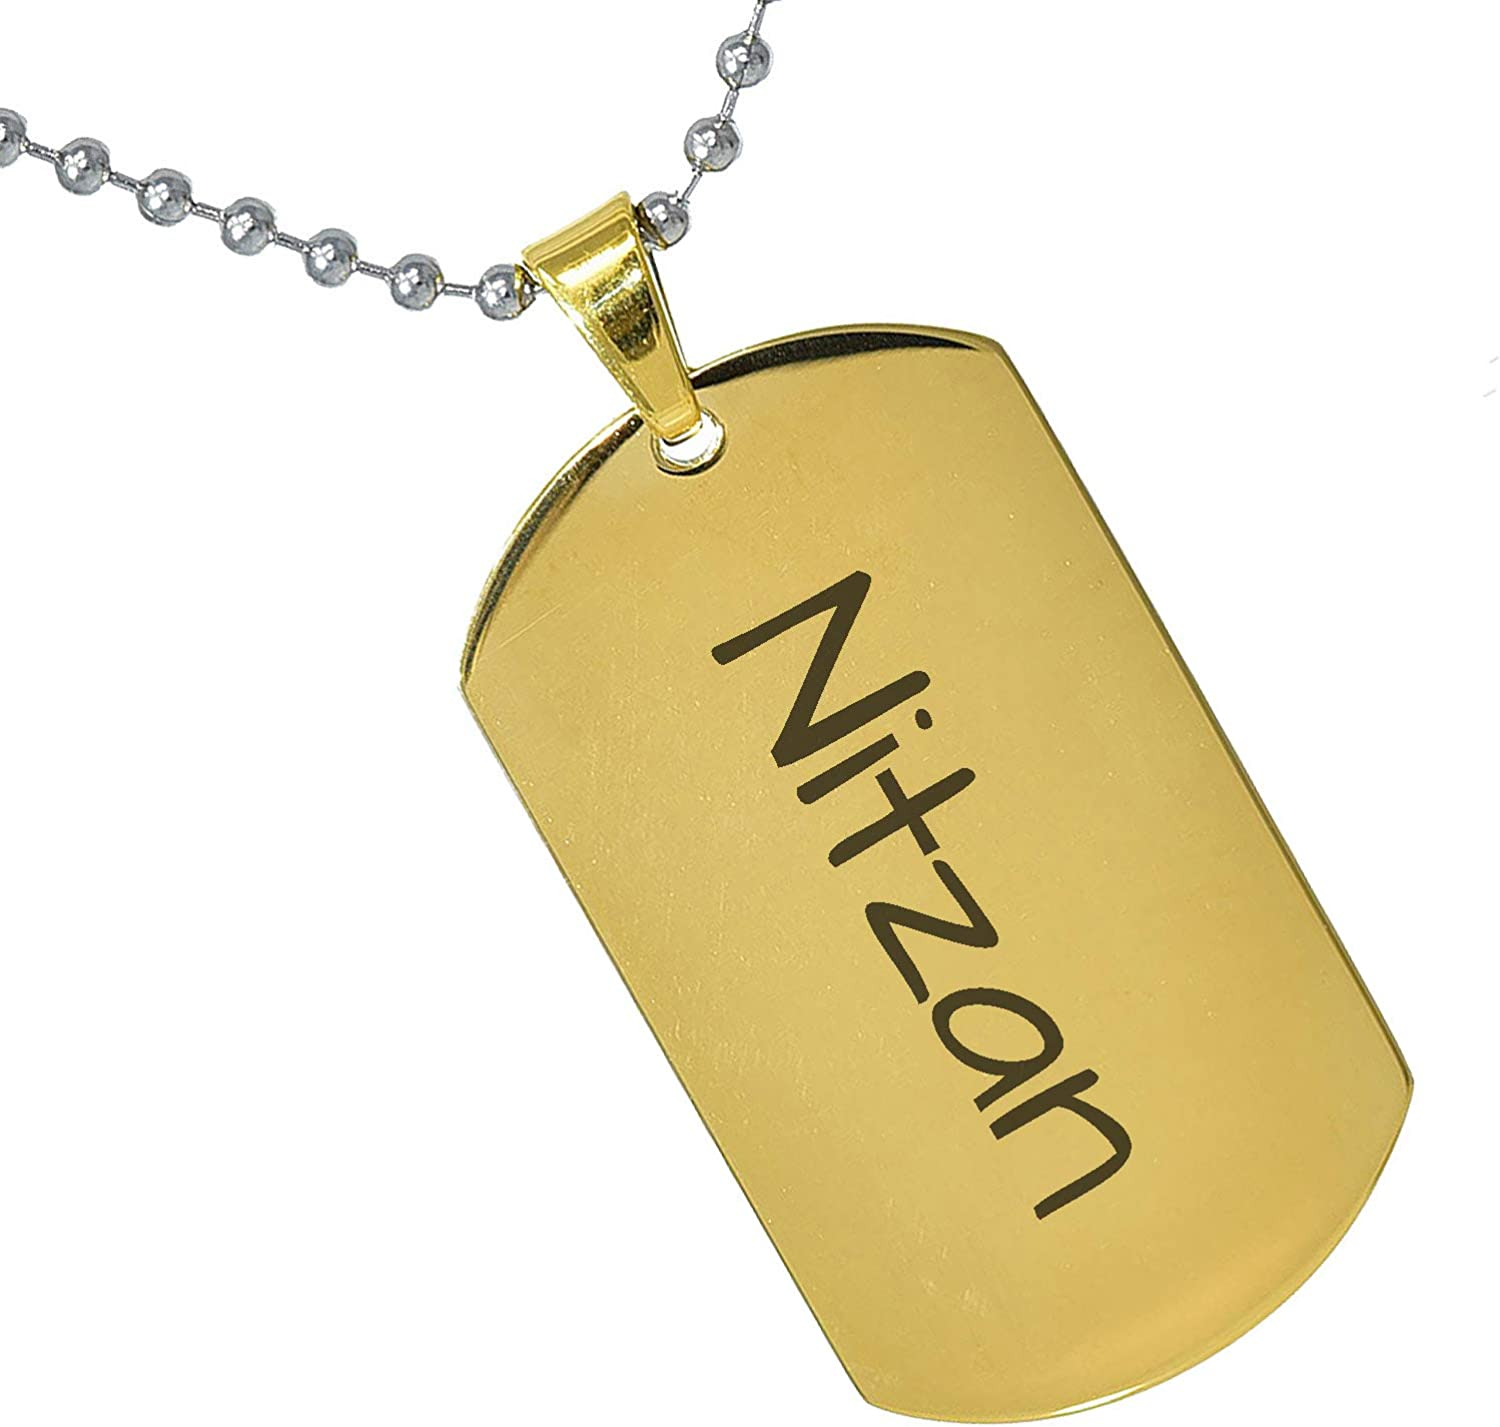 Stainless Steel Silver Gold Black Rose Gold Color Baby Name Nitzan Engraved Personalized Gifts For Son Daughter Boyfriend Girlfriend Initial Customizable Pendant Necklace Dog Tags 24 Ball Chain